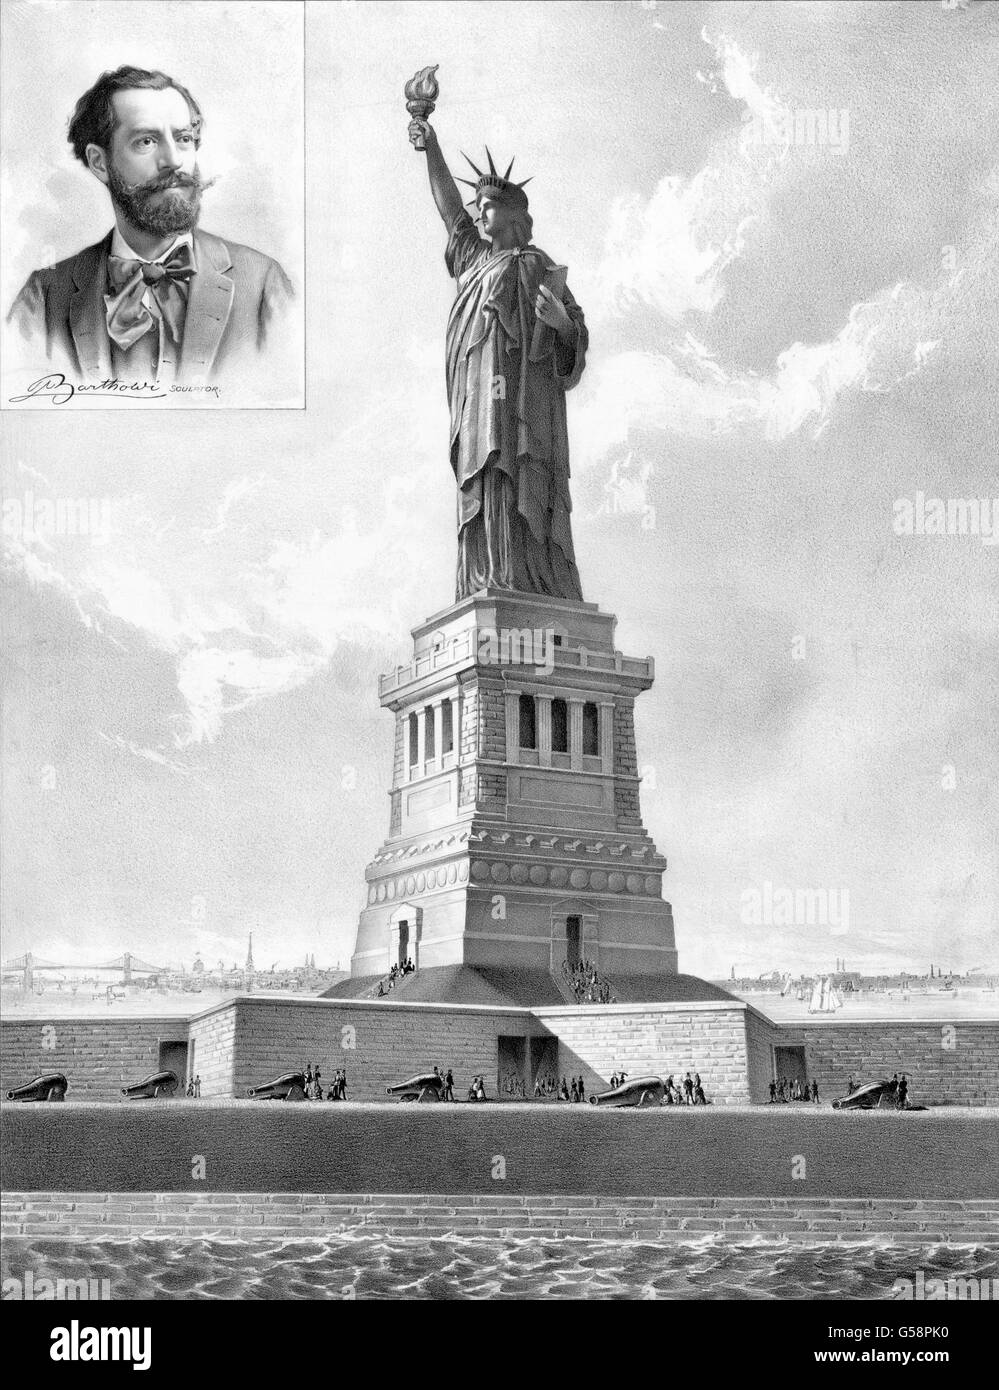 Statue of Liberty, 1886. Illustration commemorating the inauguration of the The Statue of Liberty on 28th October - Stock Image